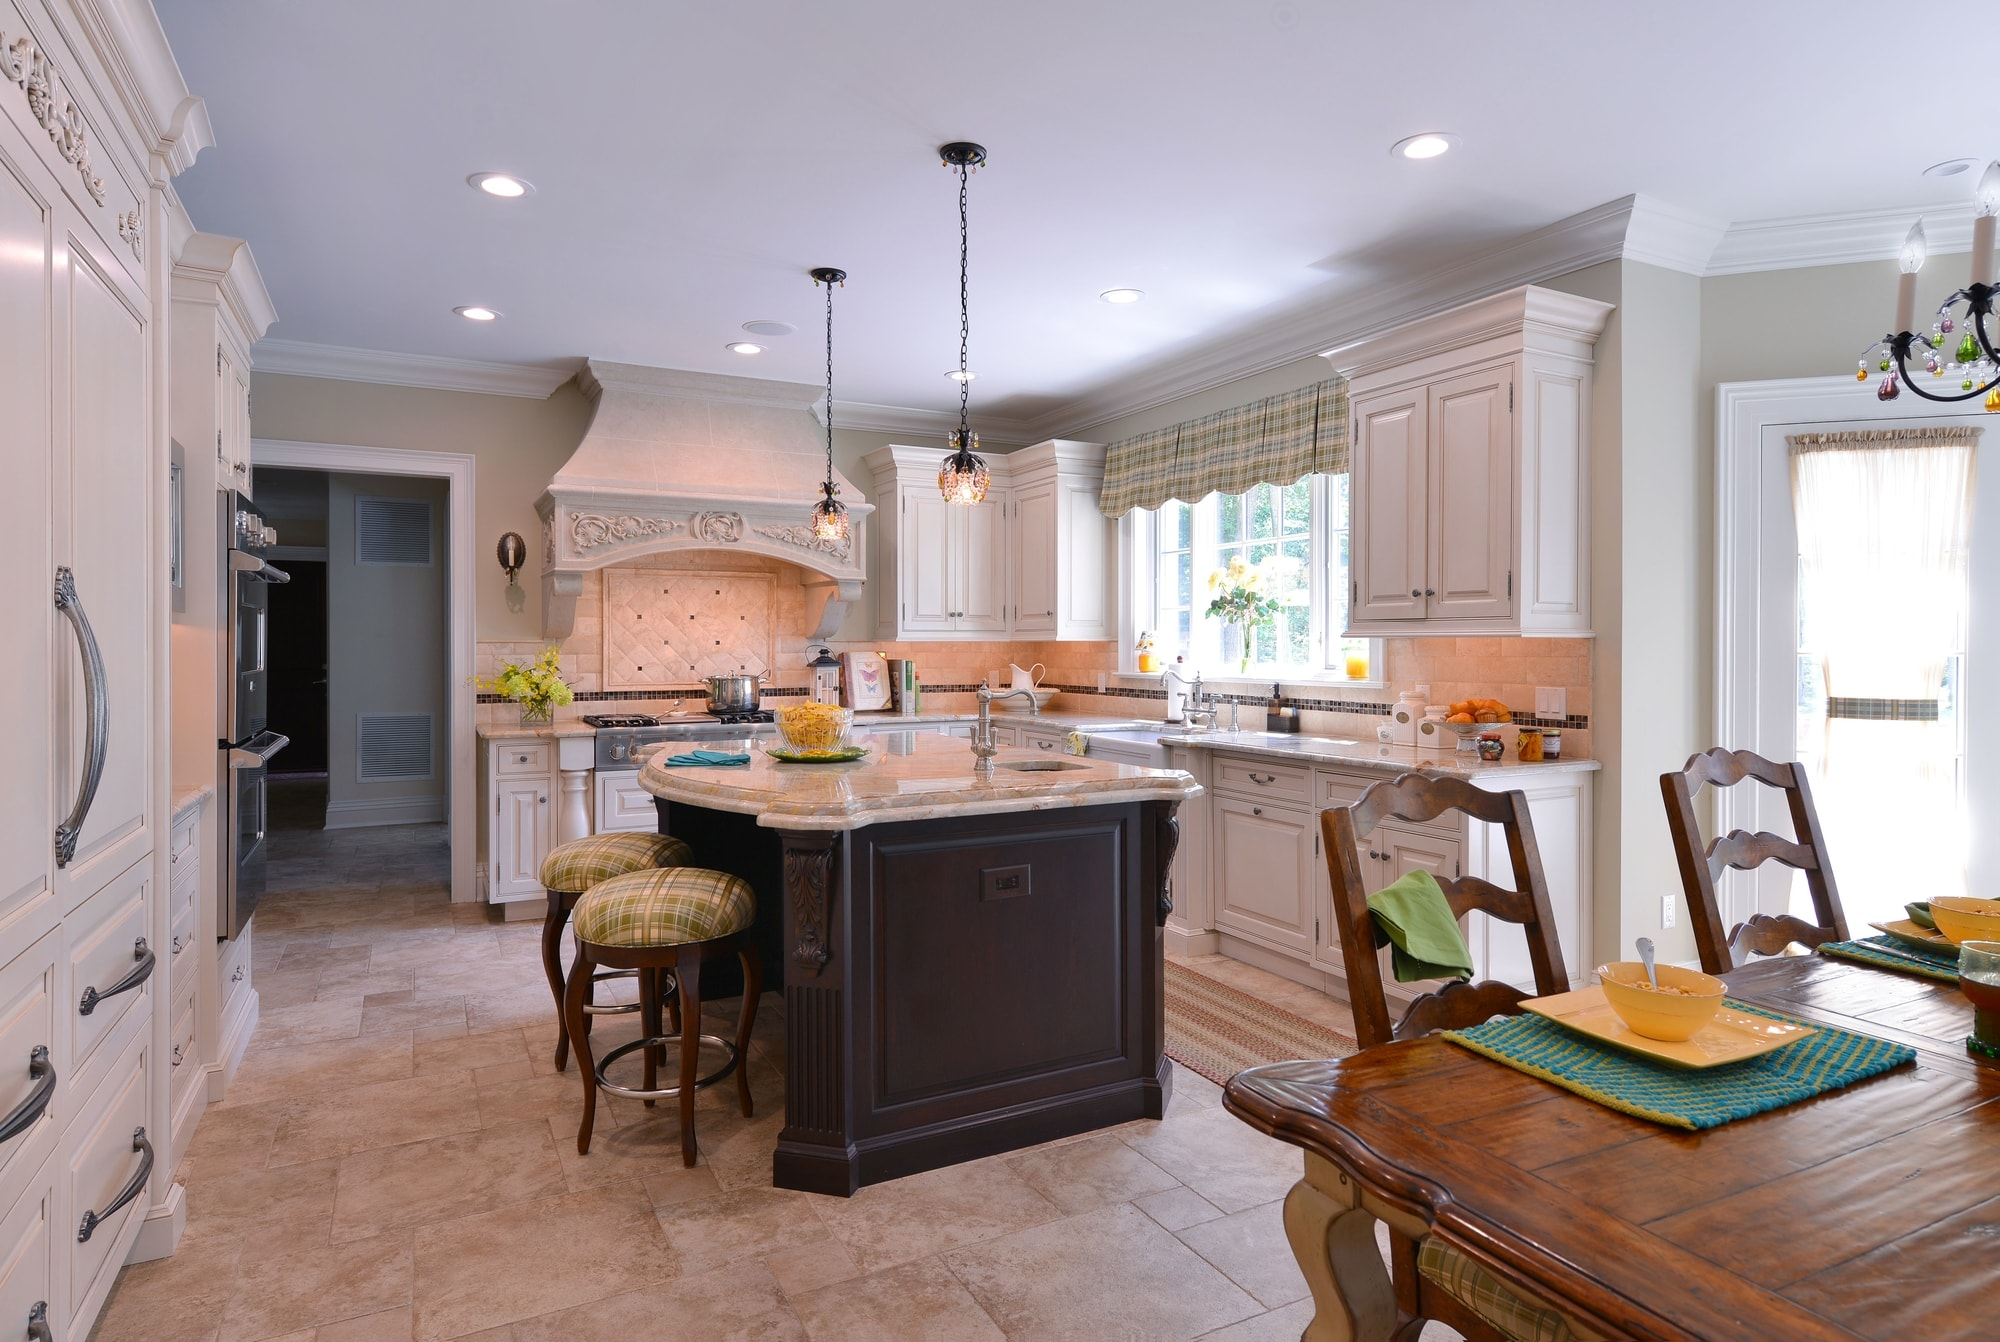 Traditional style kitchen with two hanging pendant lighting